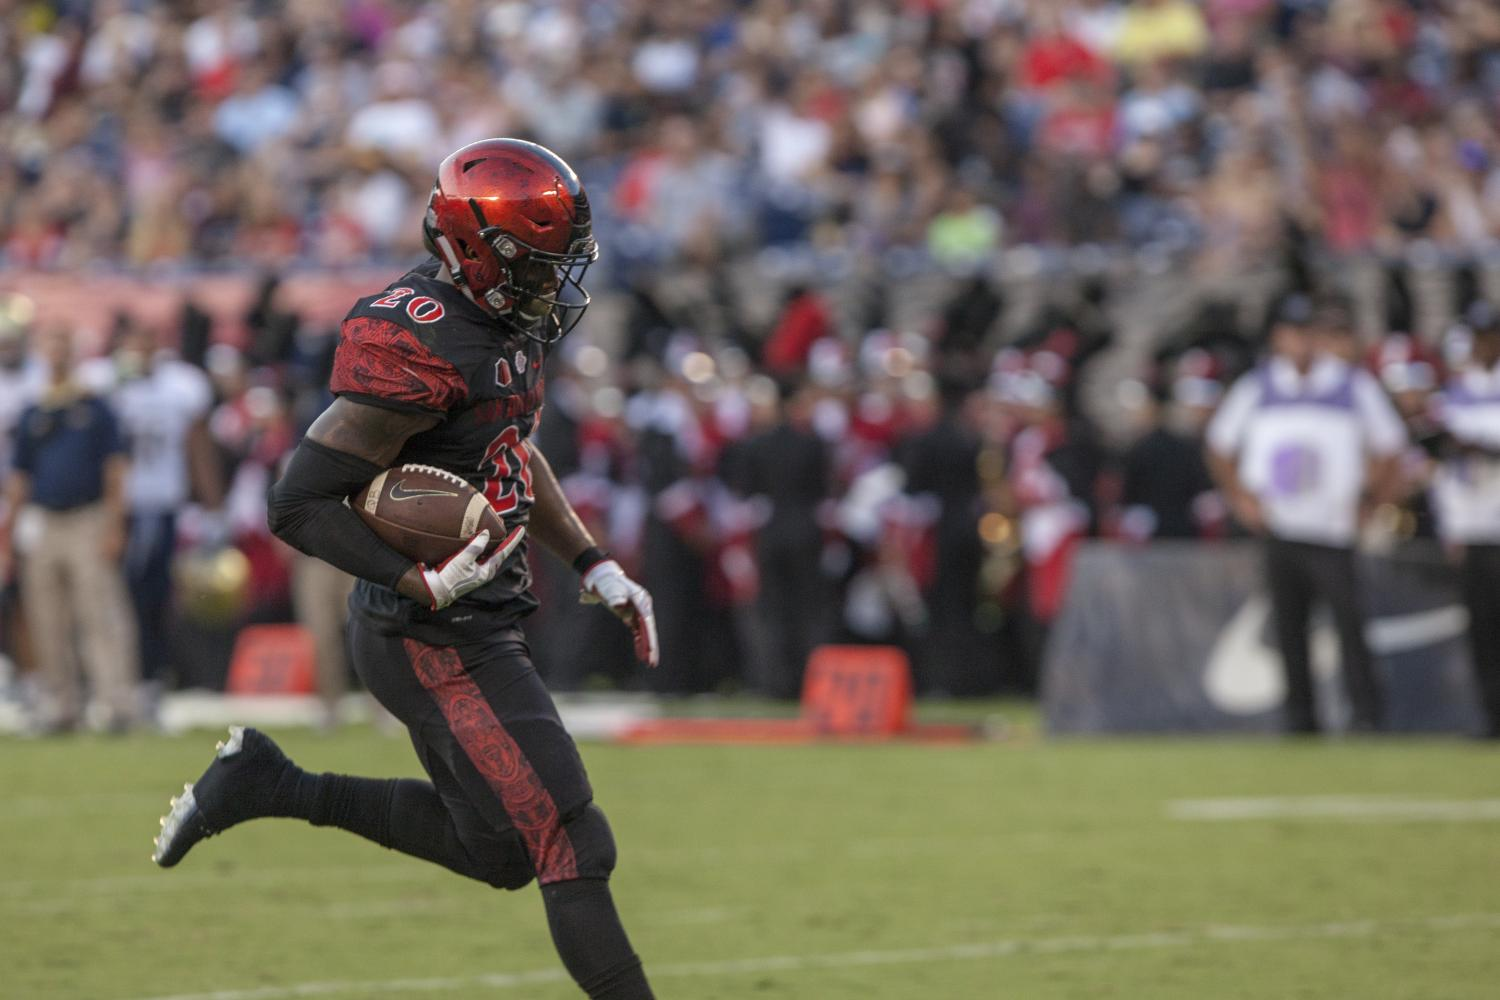 Senior+running+back+Rashaad+Penny+breaks+across+the+goal+line+in+SDSU%27s+win+over+UC+Davis.